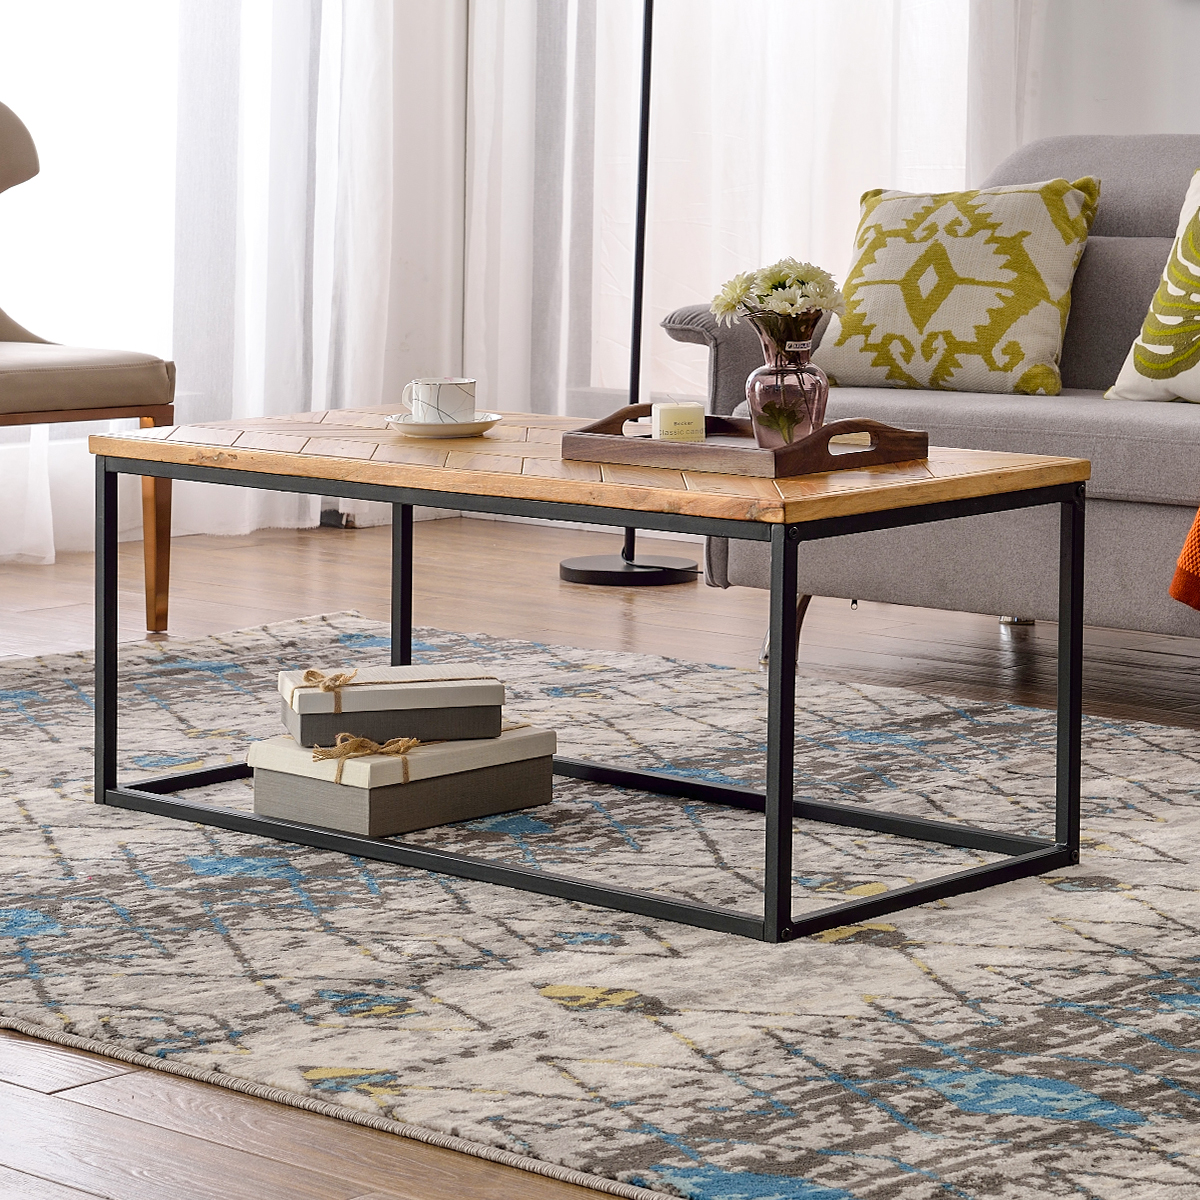 wooden wood top coffee table for living room segmart 43